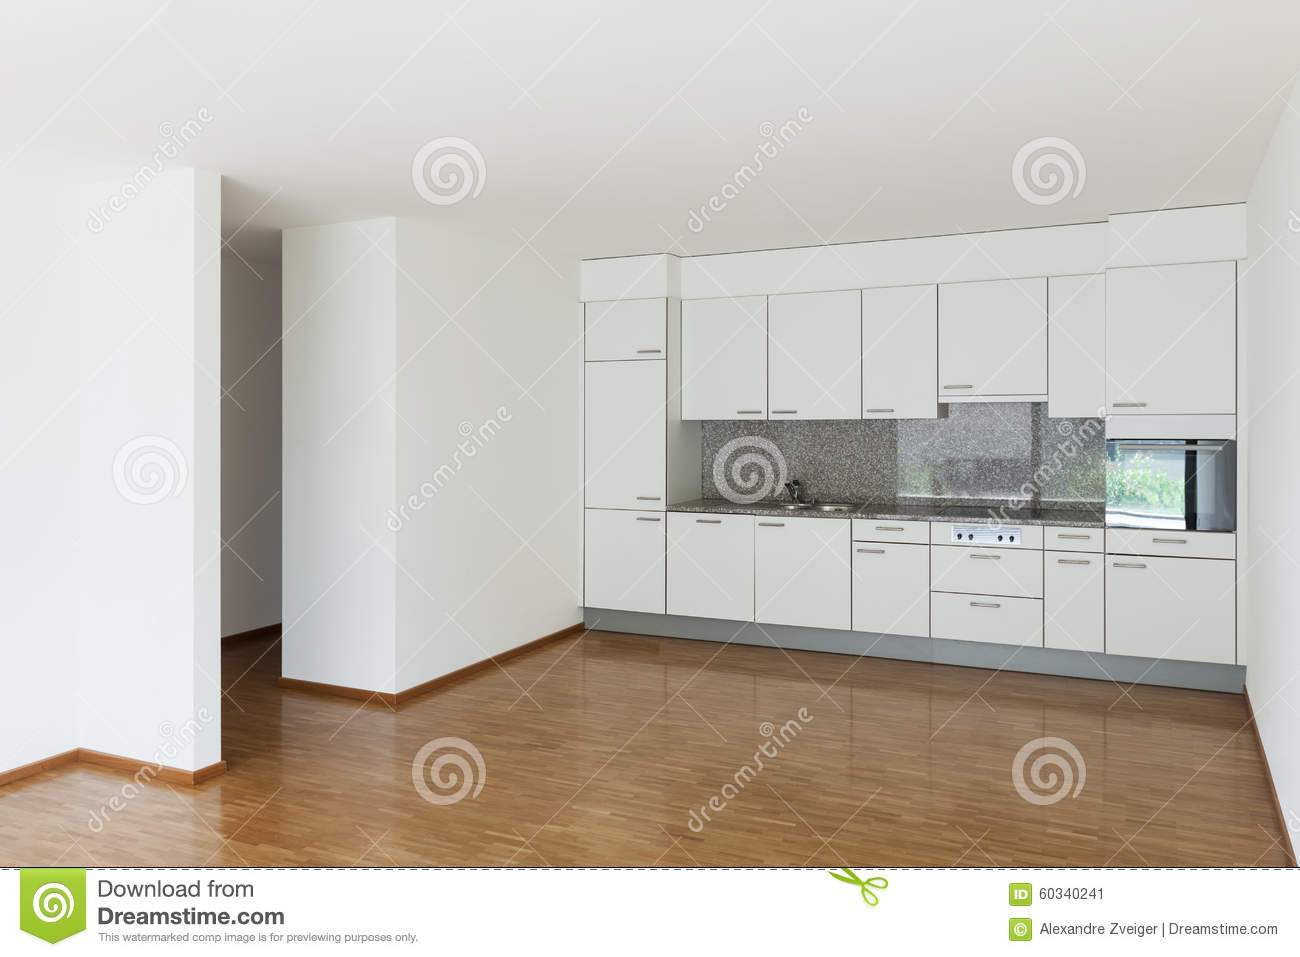 Empty Living Room With Kitchen Stock Image - Image of flat, design ...